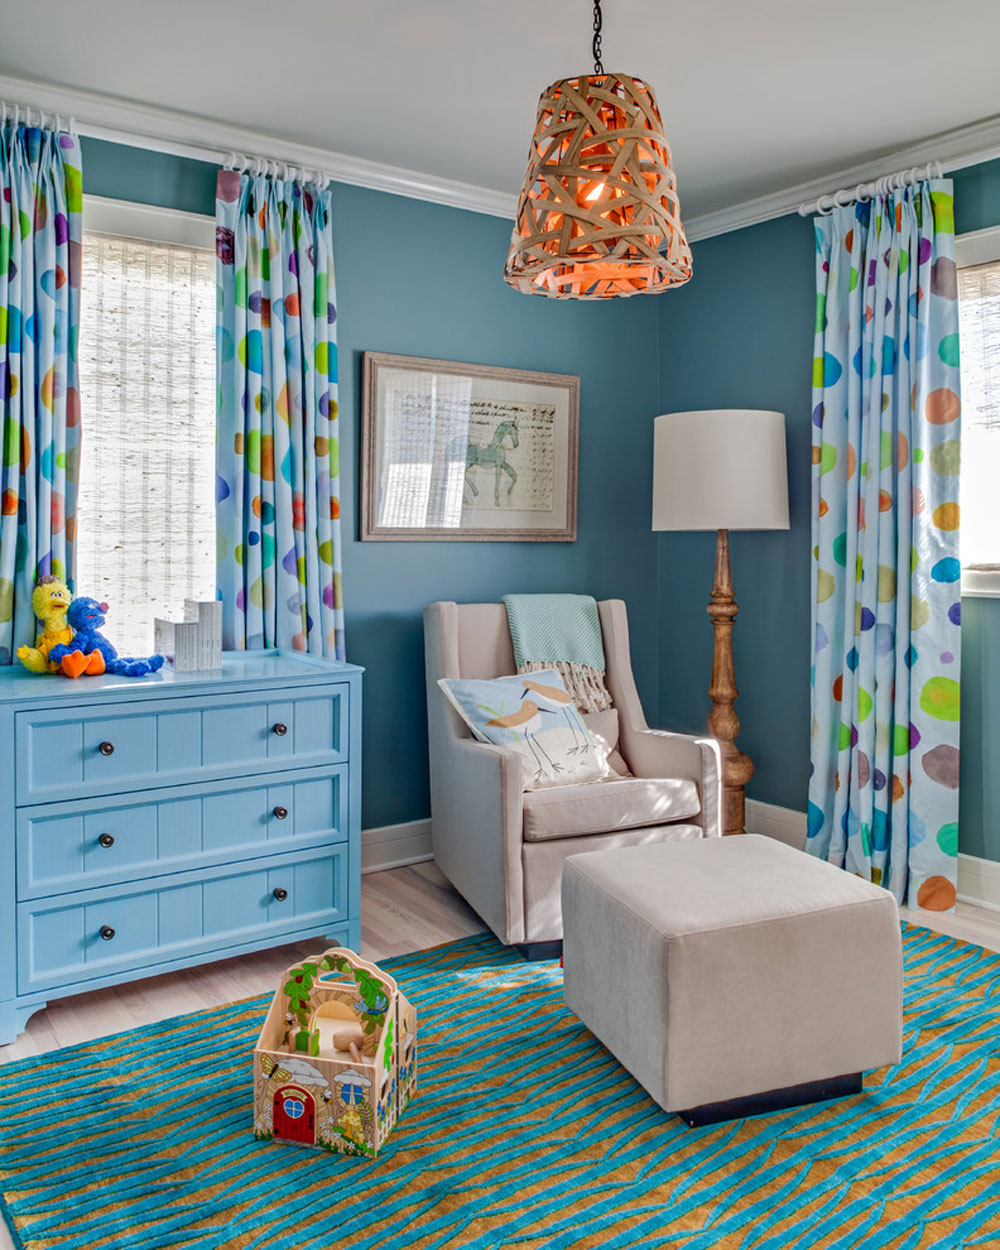 91 baby nursery color schemes for your baby's room